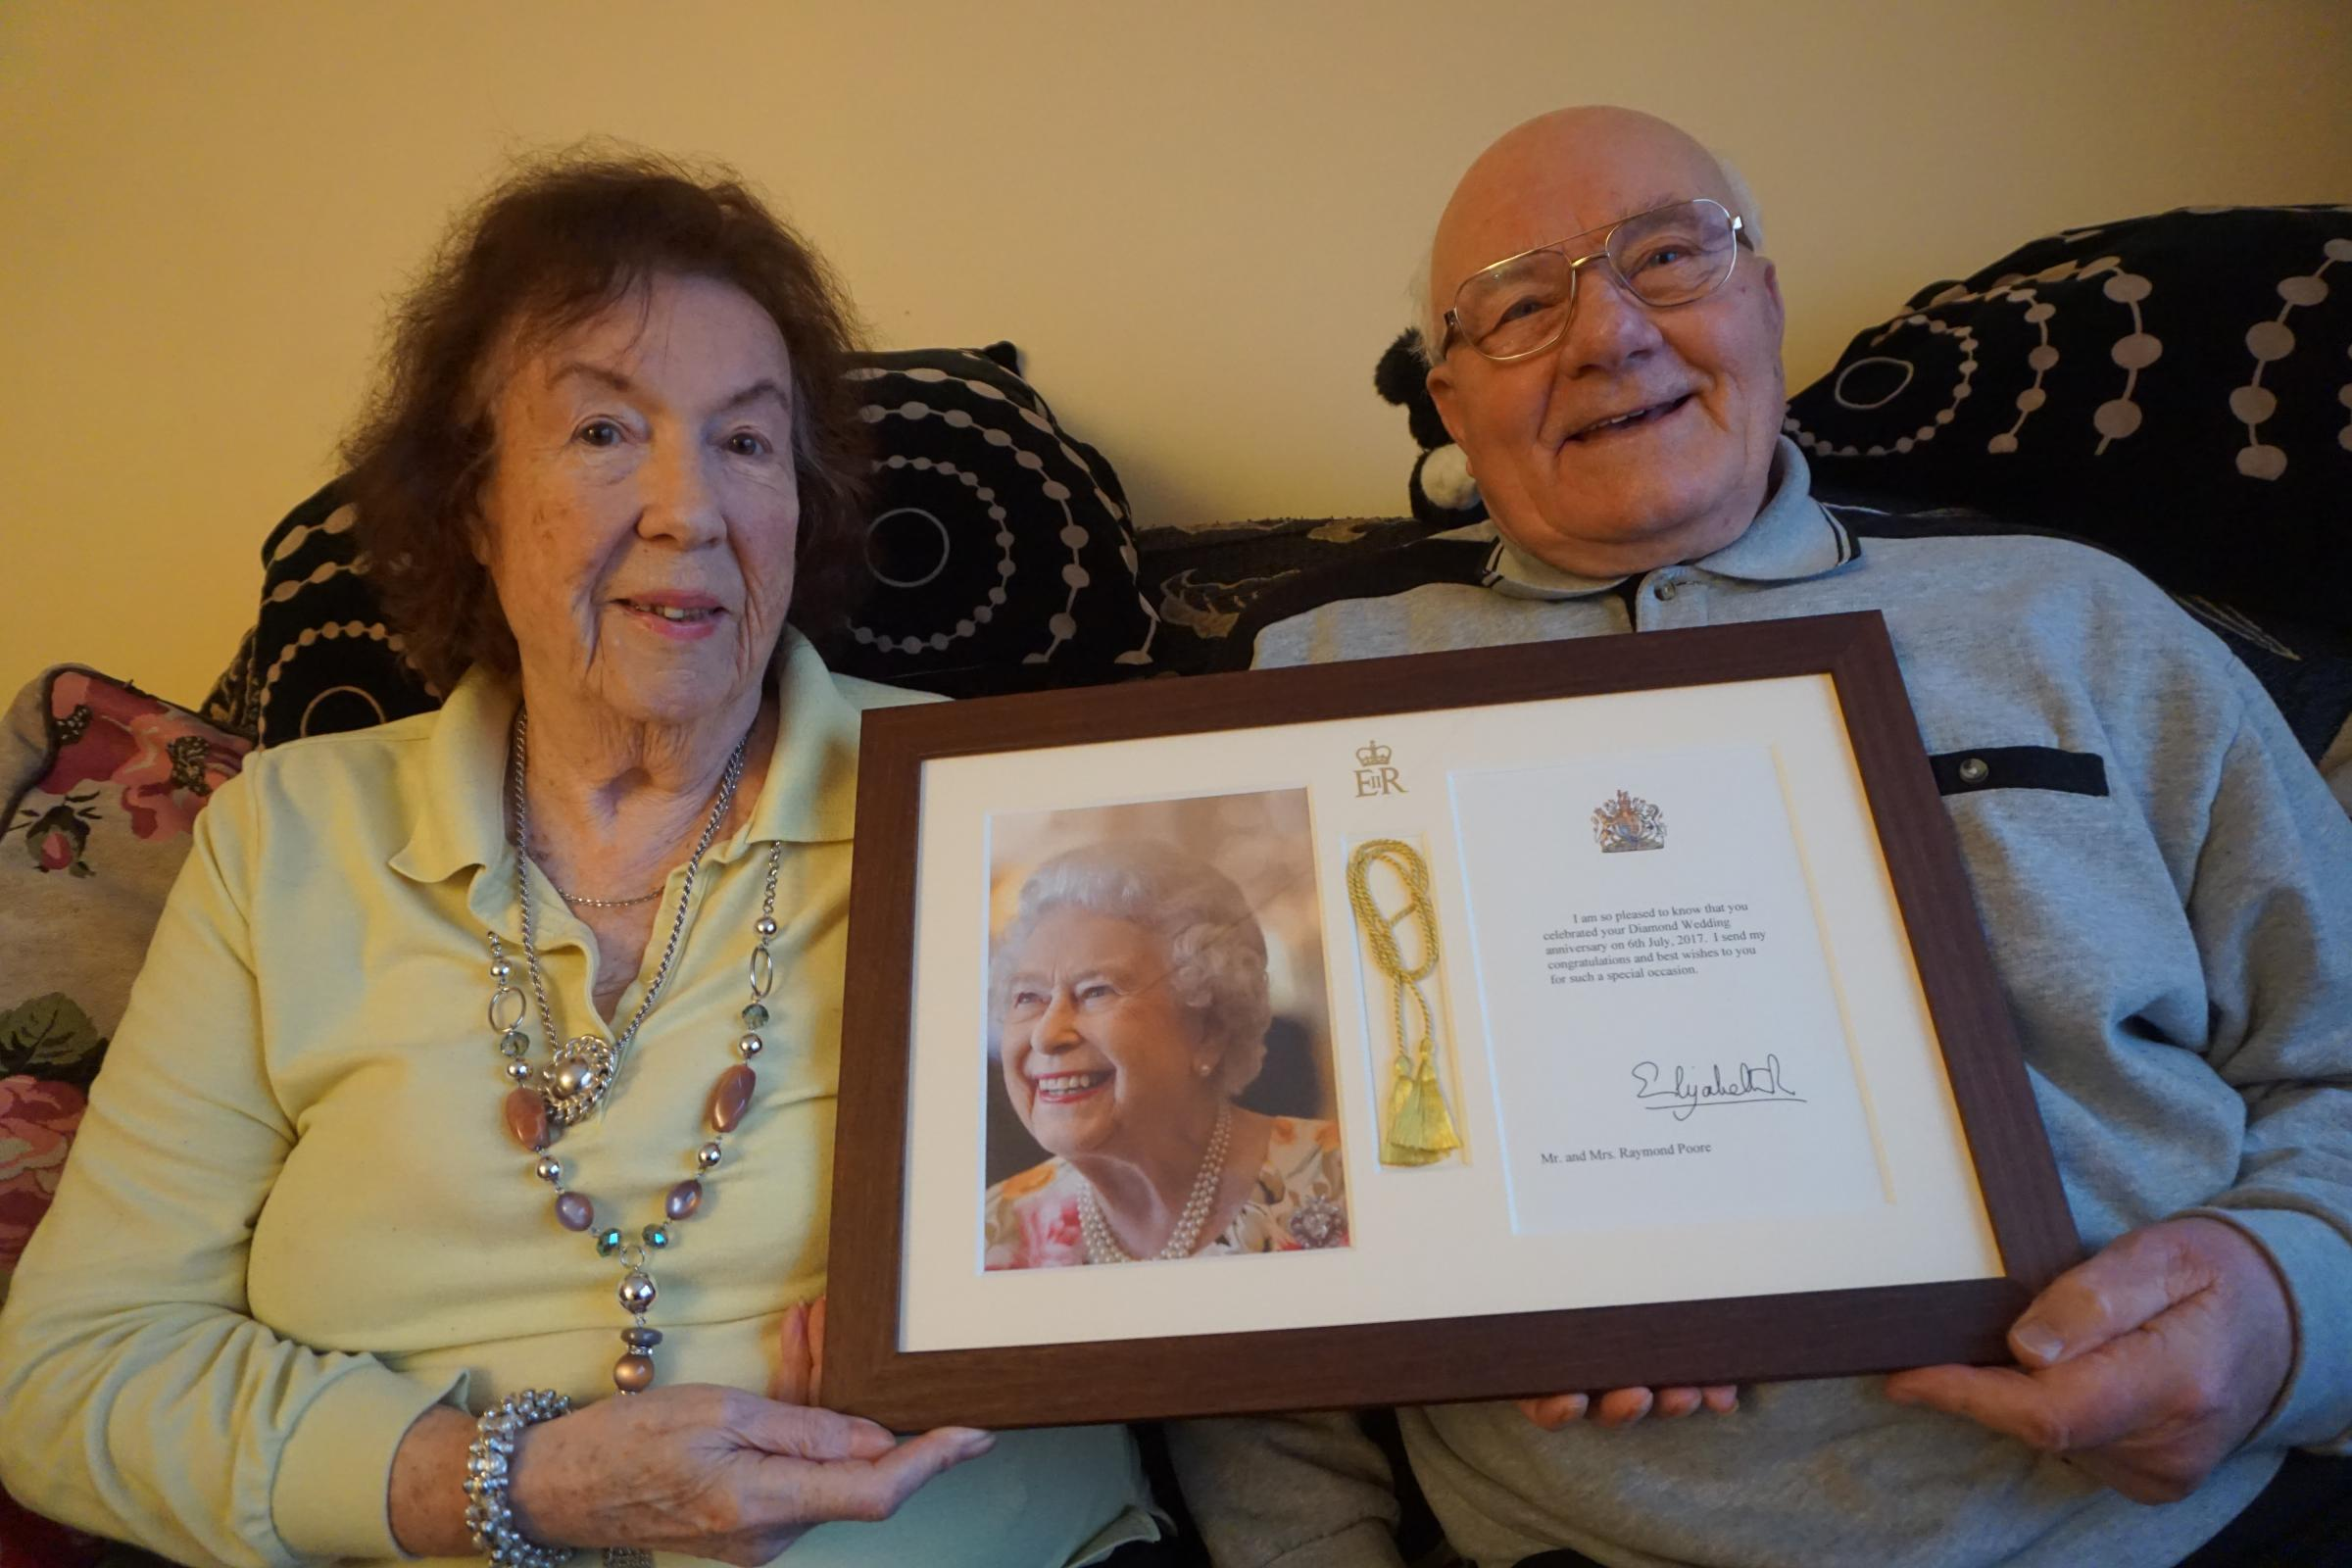 Raymond and Lilian Poore with their message from the Queen